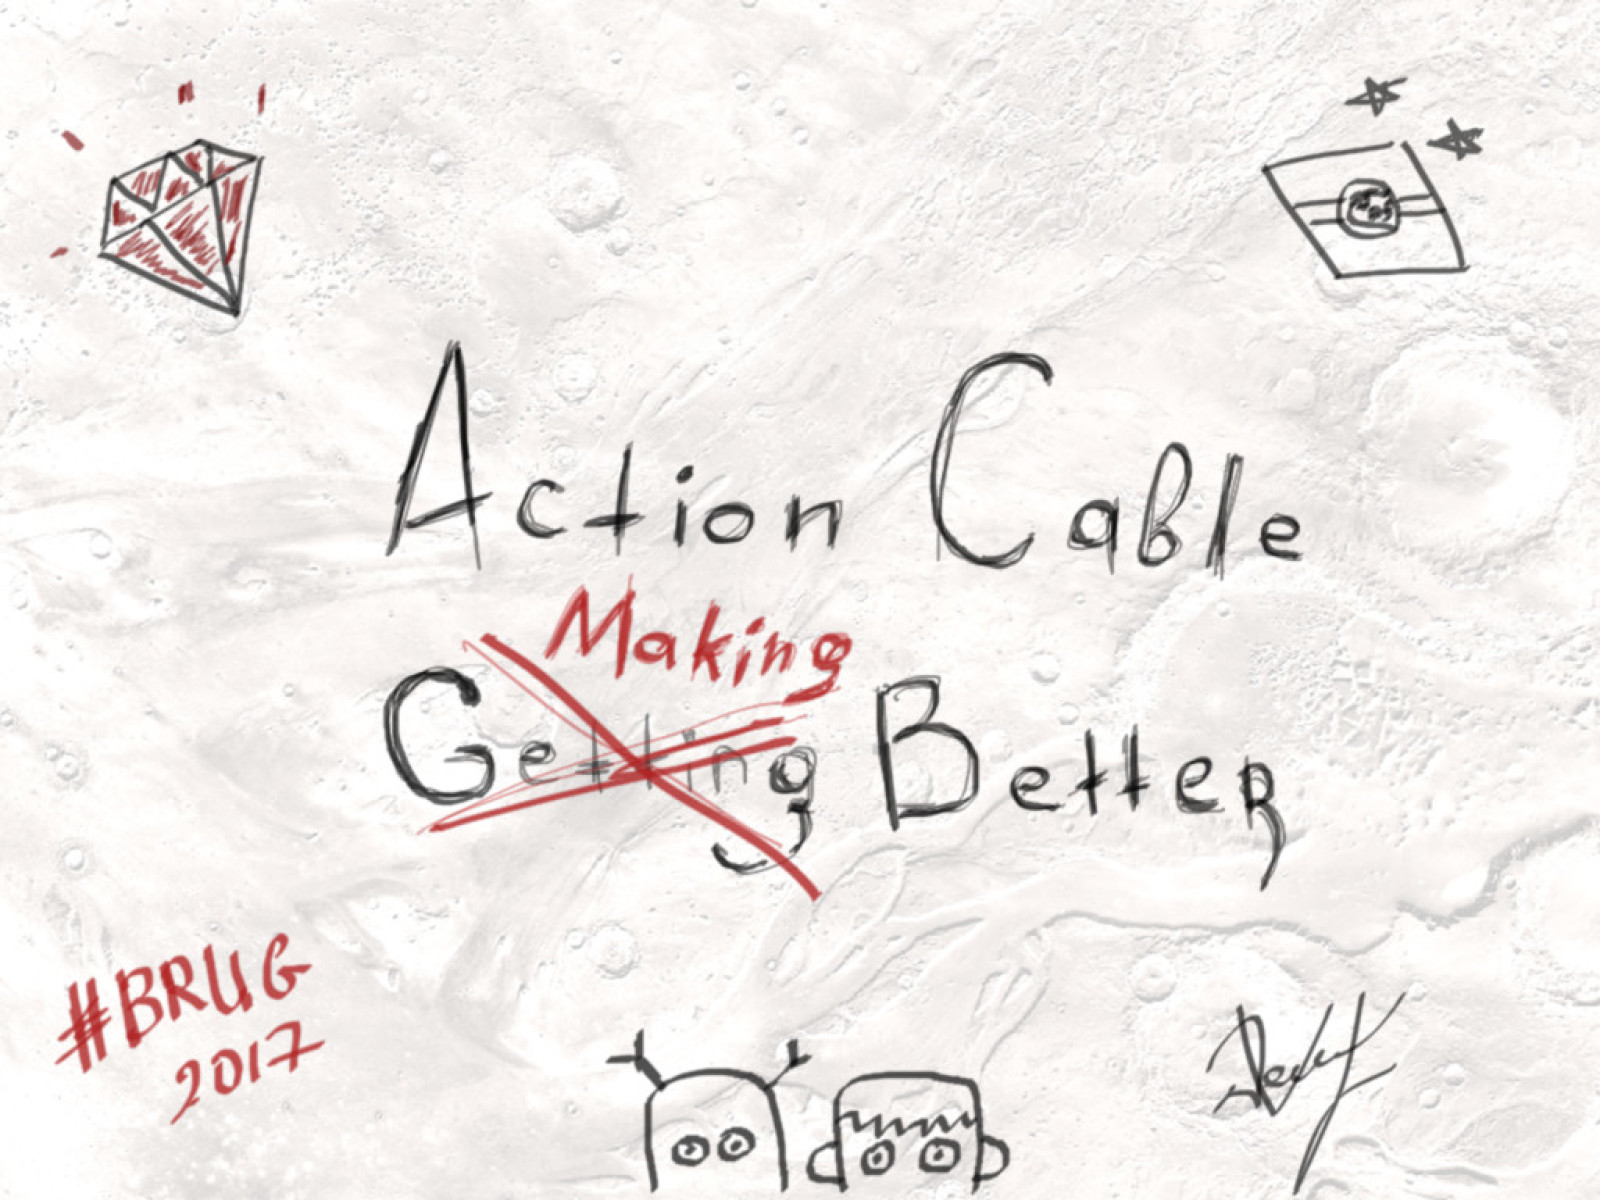 Action Cable. MakingBetter